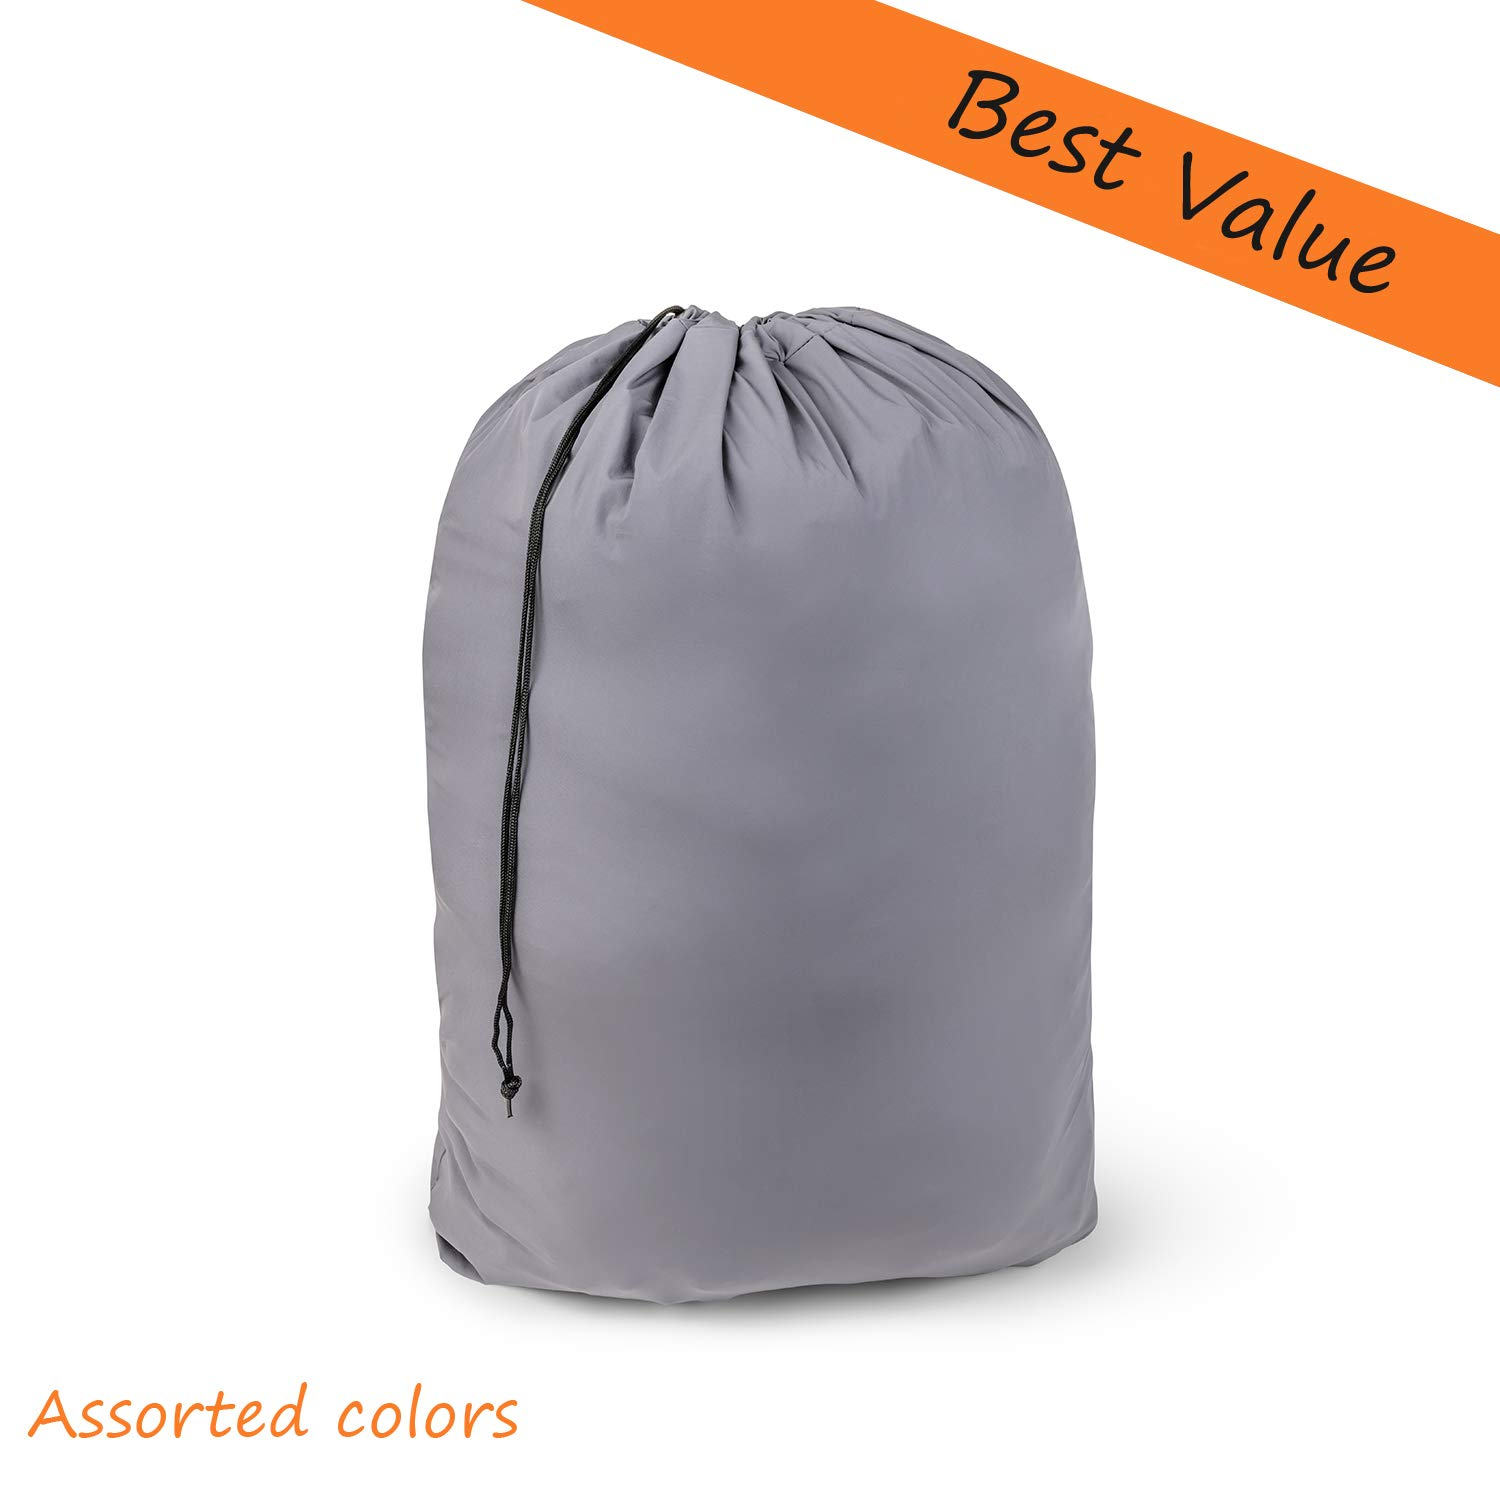 """Large Nylon Laundry Bag 30"""" x 40"""" Rip Tear Resistant Material Drawstring Closure - Assorted Colors Patterns (6)"""